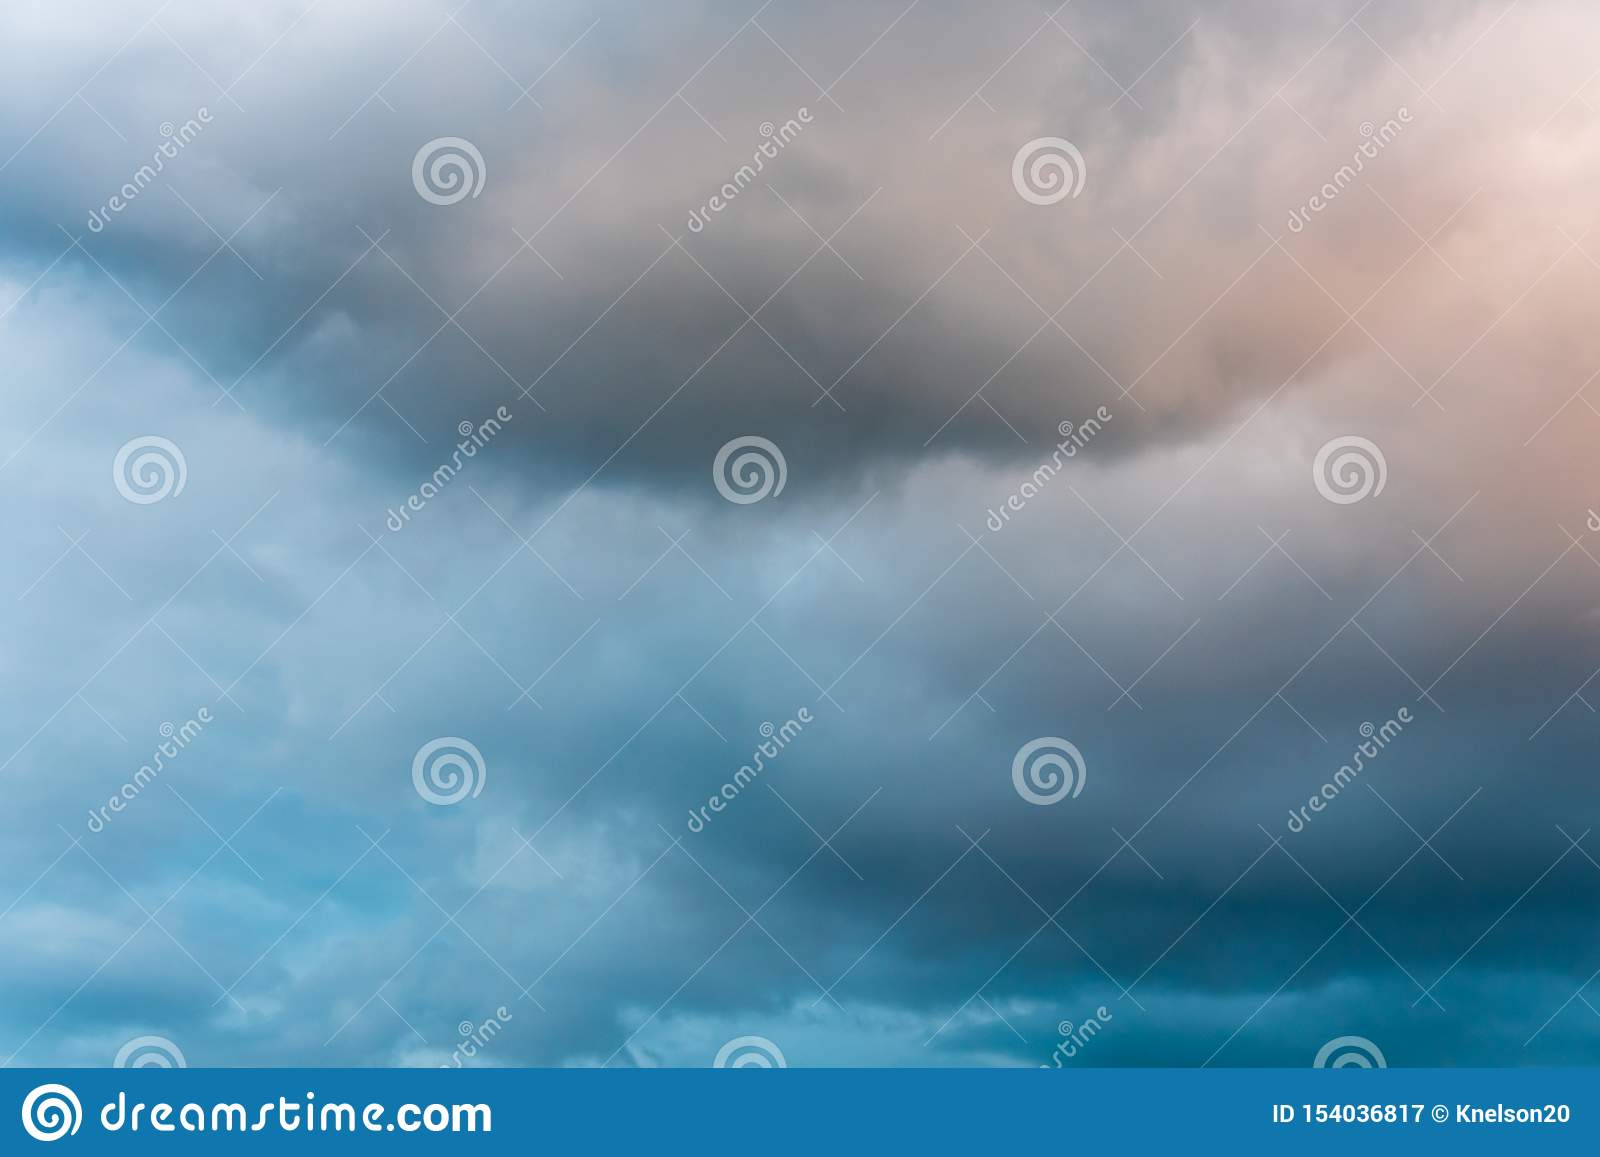 Stormy Sky At Twilight With Clouds In Various Shades Of Blue Gray And Orange Stock Image Image Of Texture White 154036817